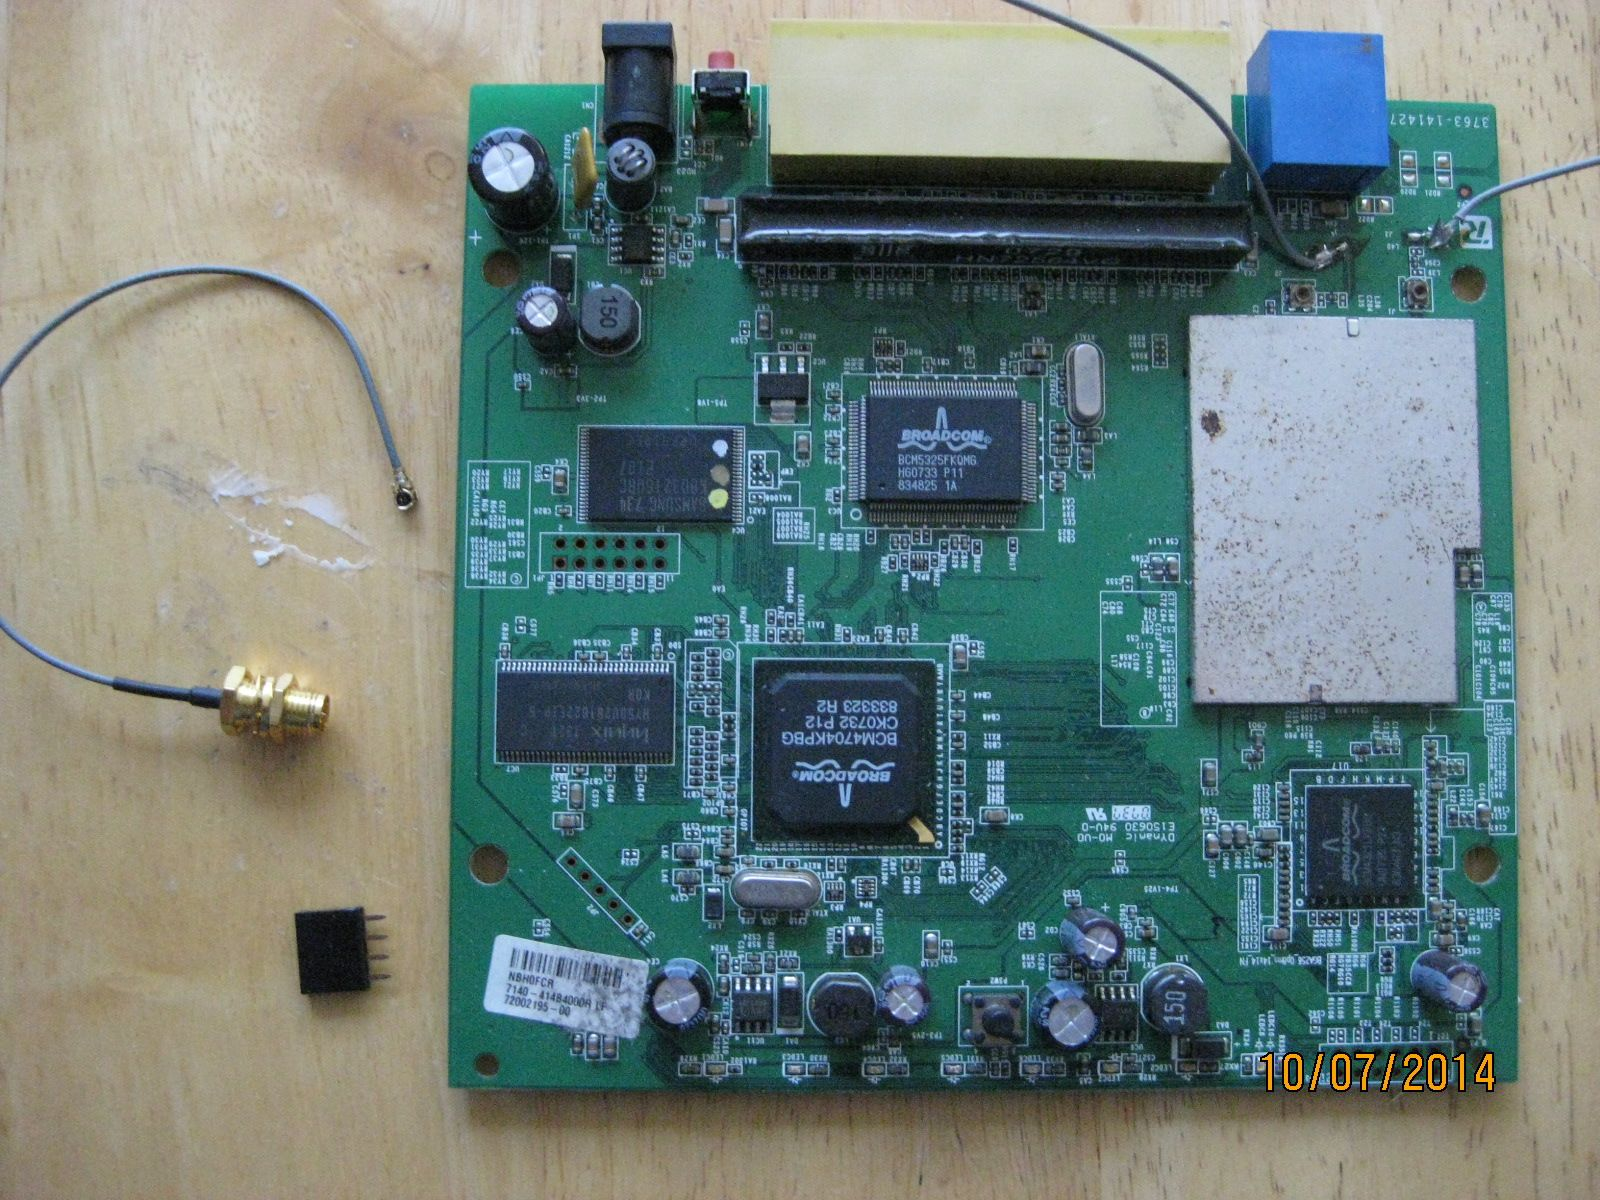 Linksys Wrt 150 N Antenna Mod Picture 1 With Rp Sma Jack Male Pin To Pigtail Ufl Female